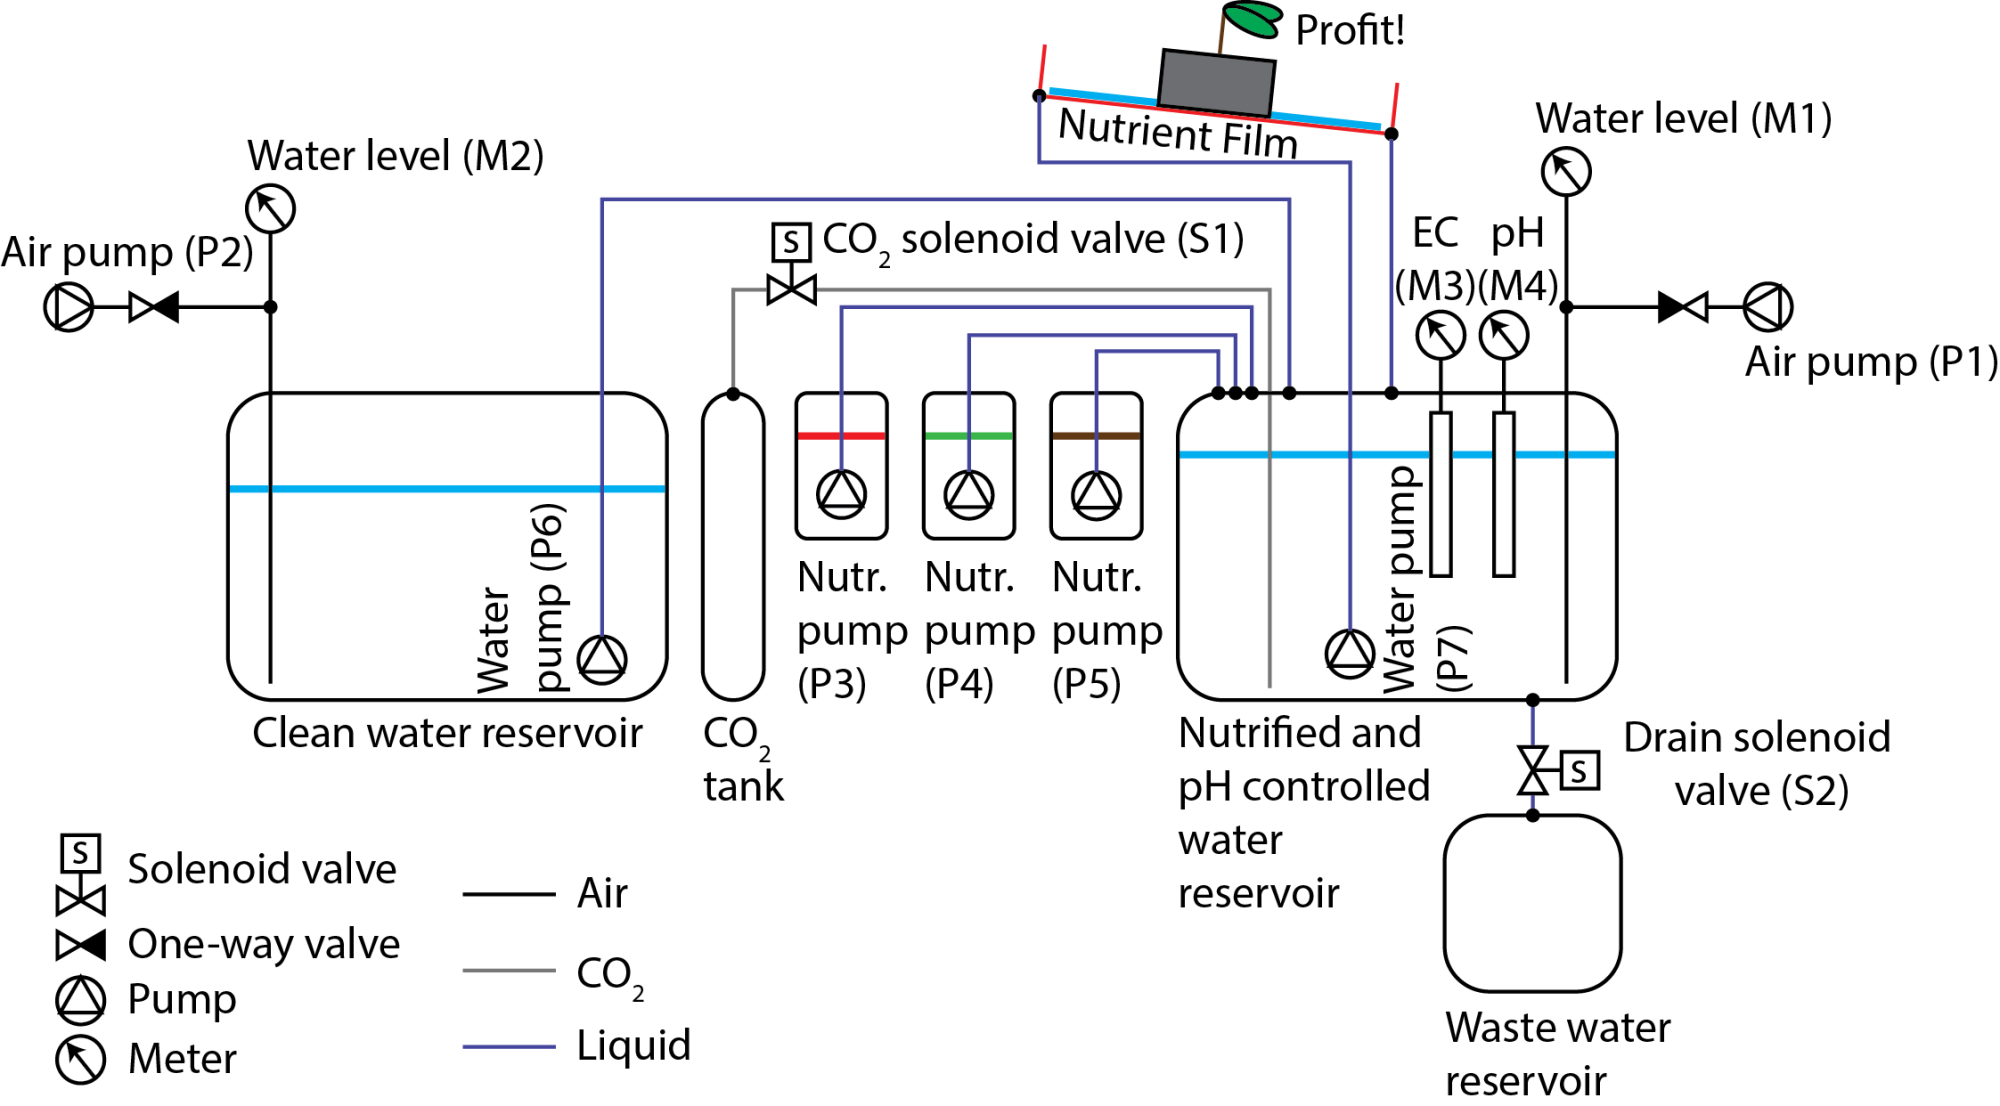 hight resolution of process schematic for the system